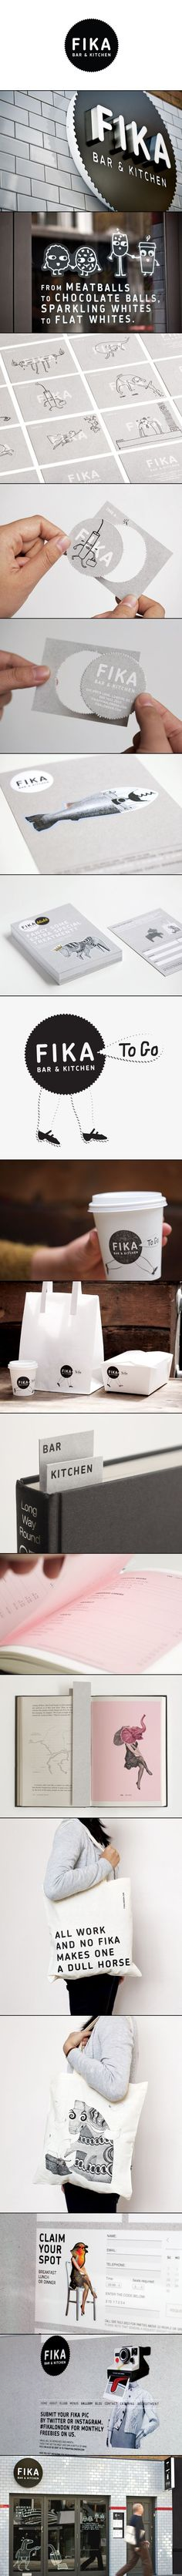 Brand Identity for Fika by Designers Anonymous - BP&O Fika Bar and Kitchen. Claim your spot identity packaging branding PDFika Bar and Kitchen. Claim your spot identity packaging branding PD Corporate Design, Brand Identity Design, Graphic Design Branding, Corporate Identity, Retail Design, Visual Identity, Identity Branding, Food Branding, Personal Identity